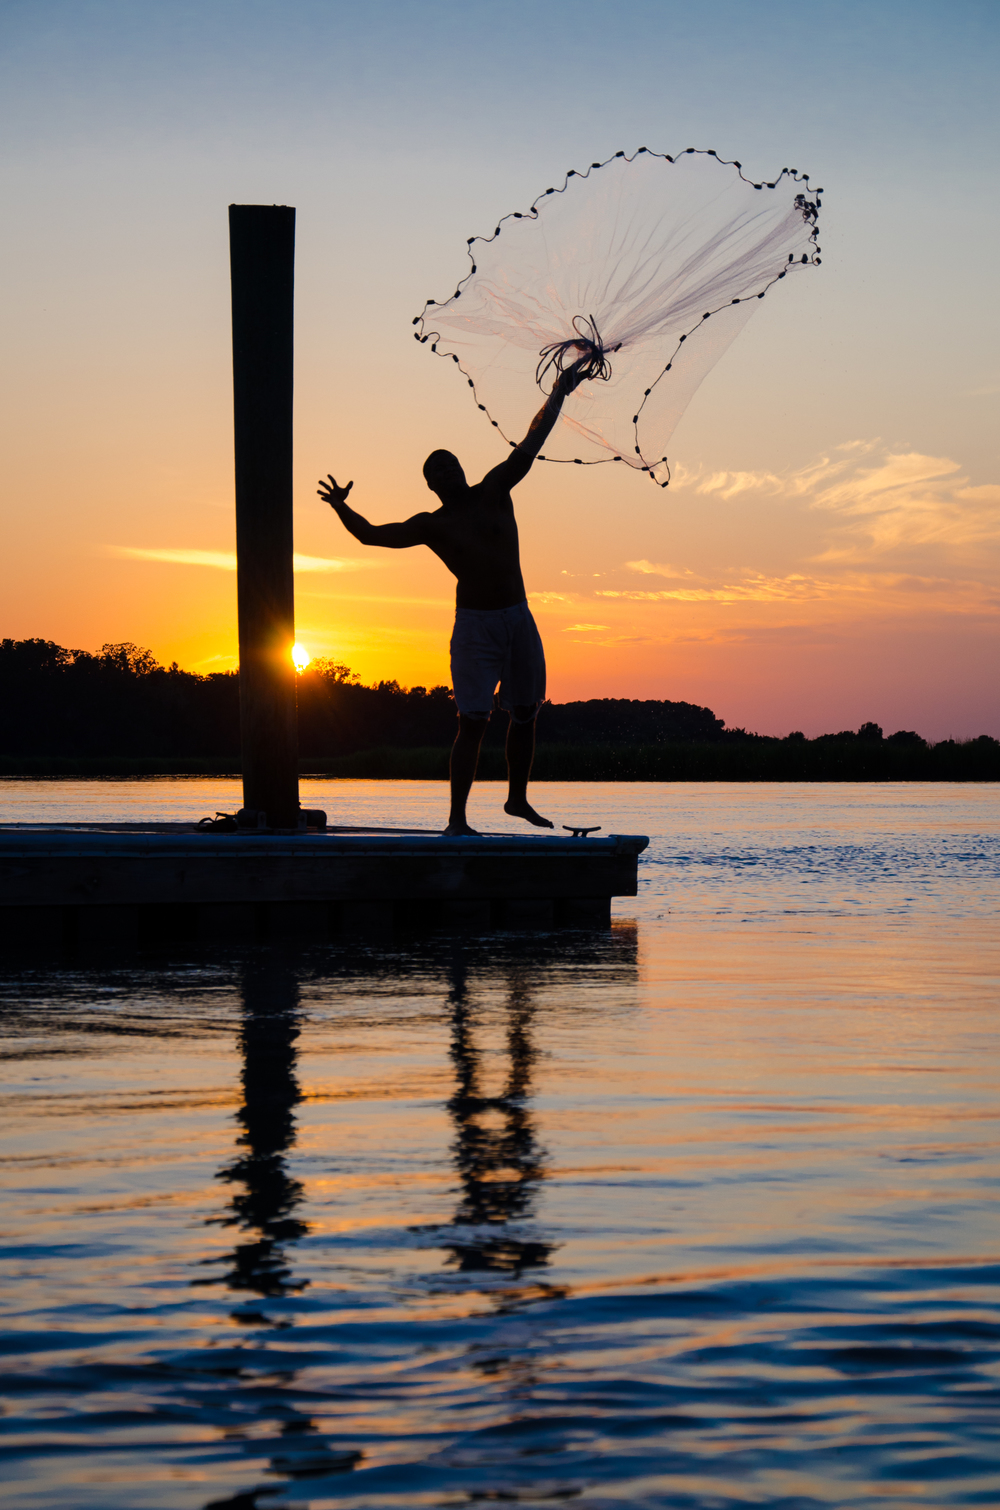 Silhouette of man throwing a cast net at sunset on Edisto Island.